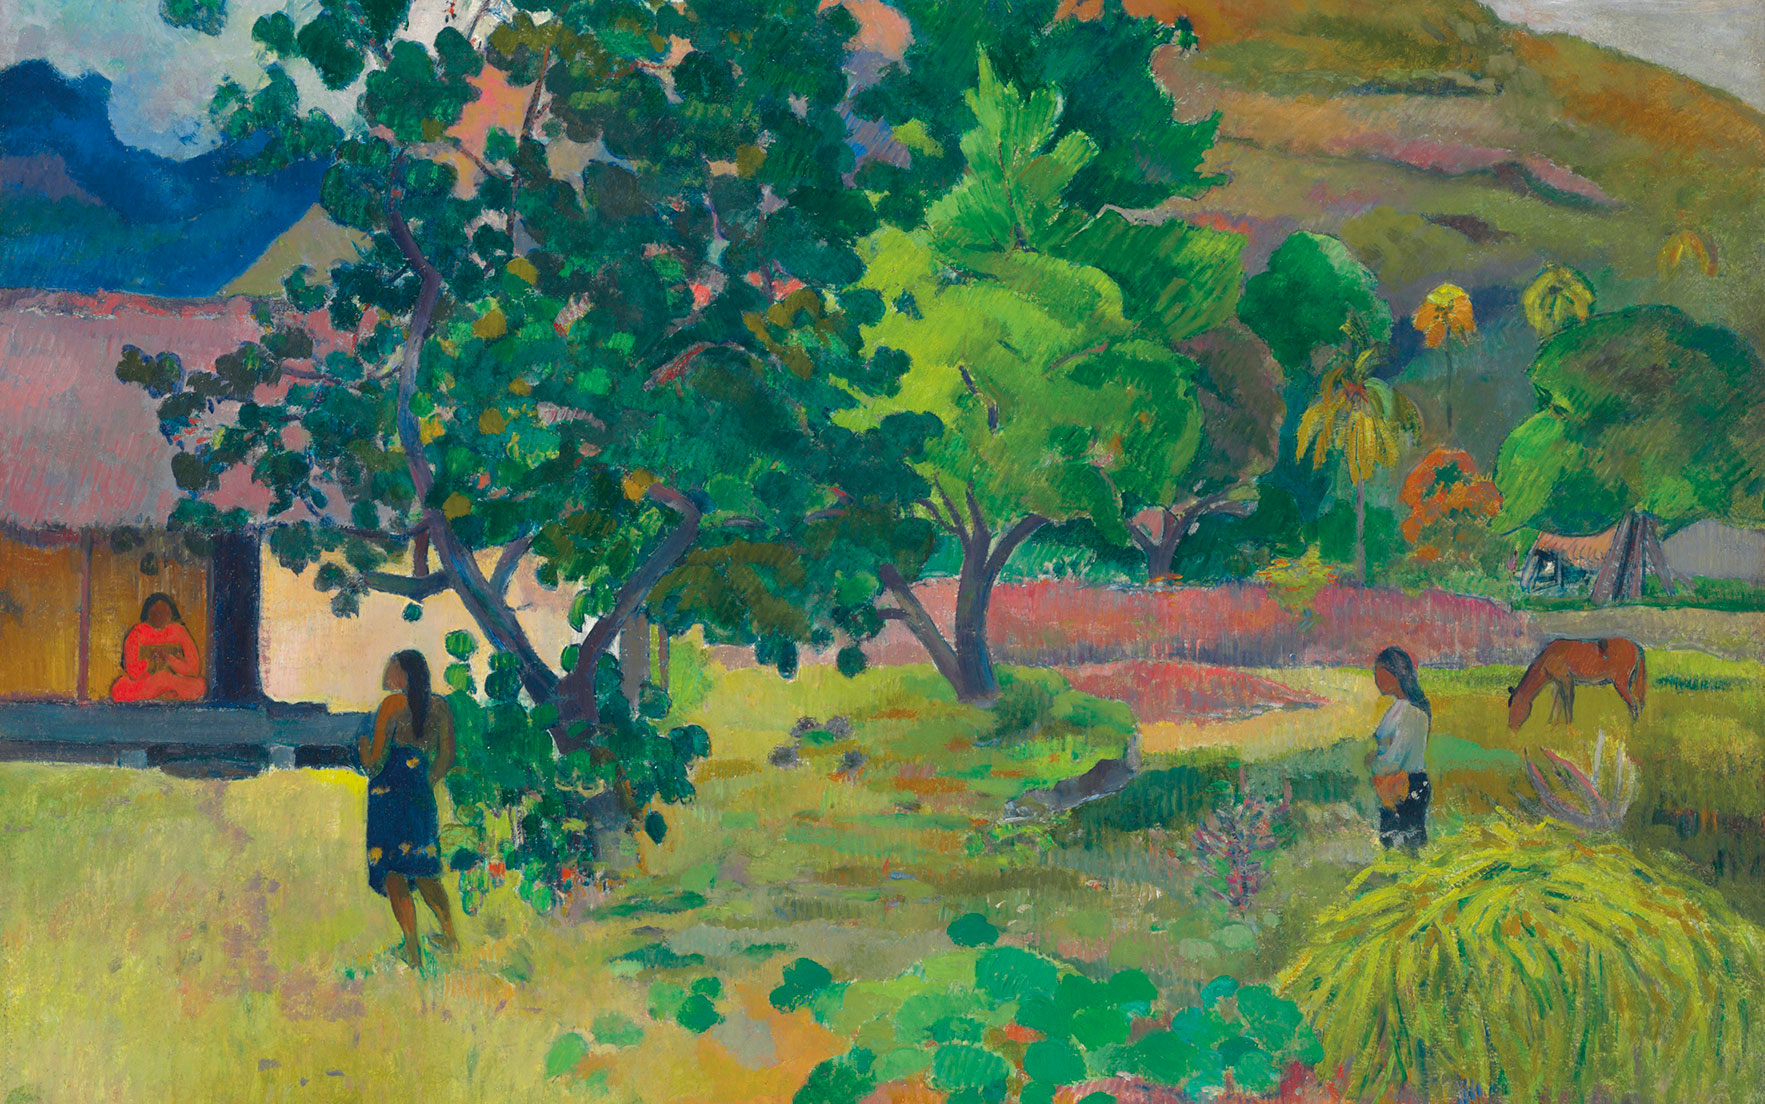 Paul Gauguin, Te Fare (La maison) (detail), 1892. Estimate £12,000,000-18,000,000. This work is offered in the Impressionist & Modern Art Evening Sale on 28 February at